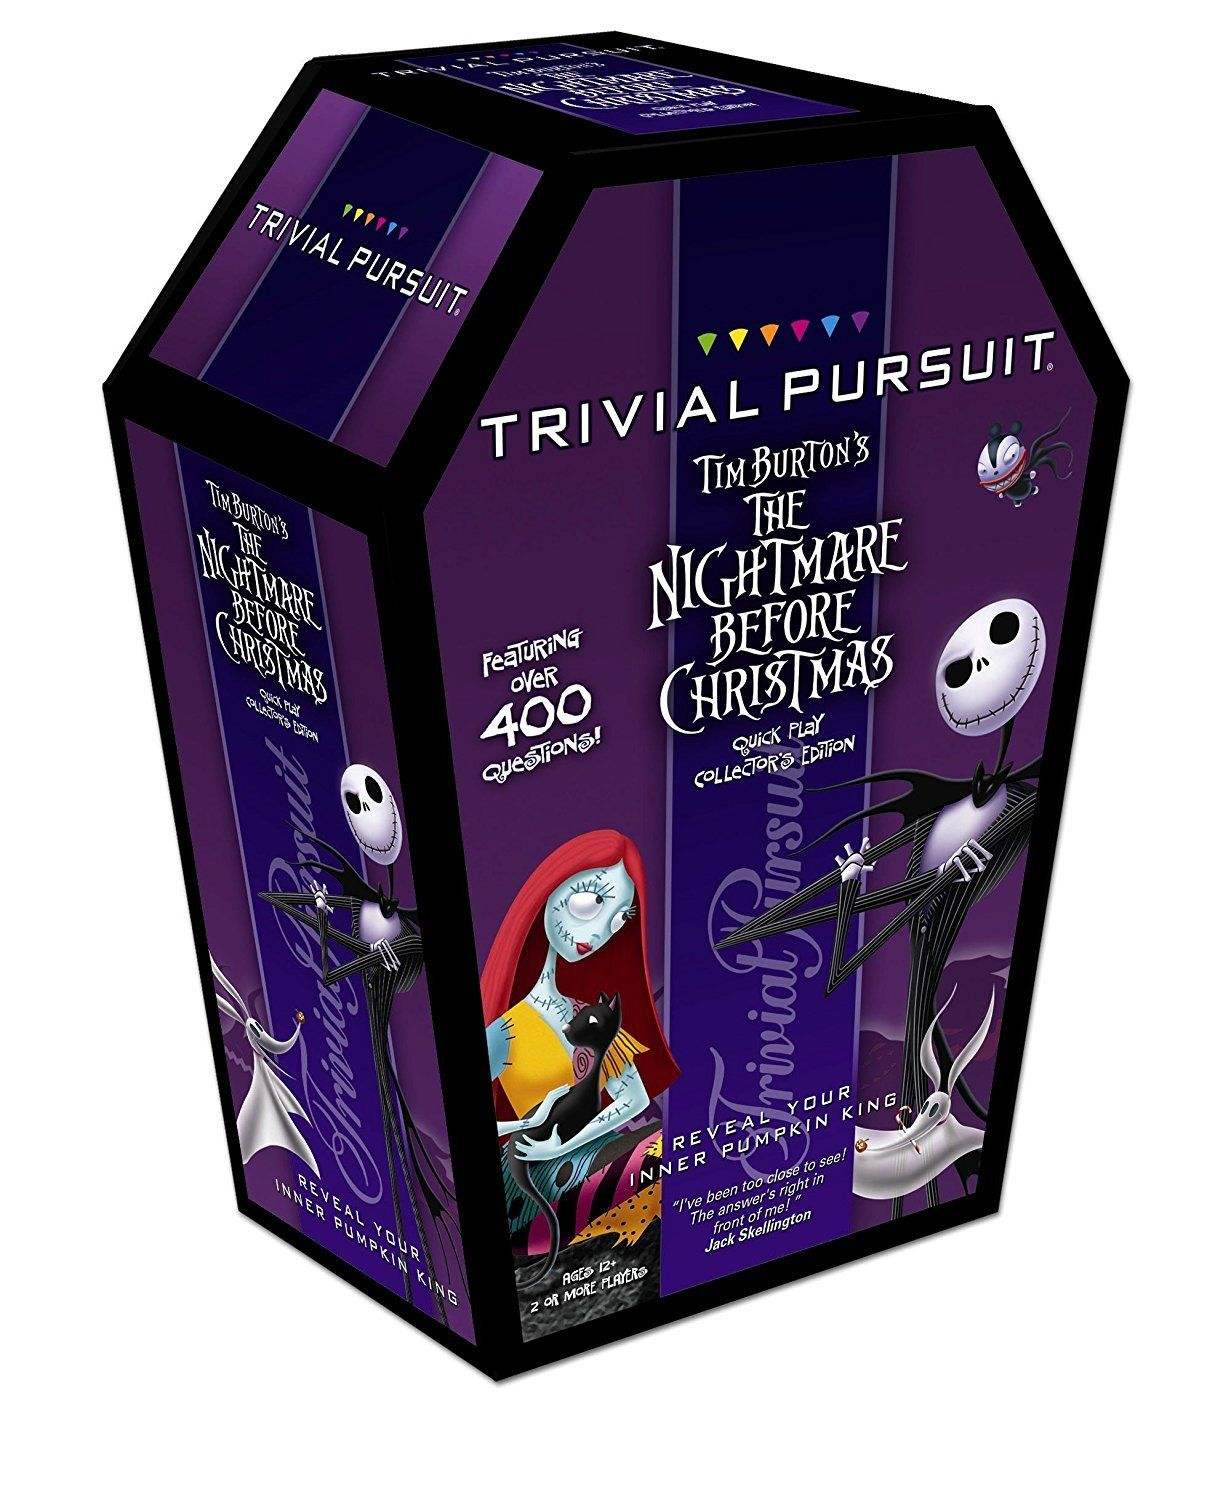 TRIVIAL PURSUIT: Tim Burton's The Nightmare Before Christmas. It's the infamous Pumpkin King teaming up with America's favored facts online game to bring you the shocking Tim Burton's The Nightmare Before Christmas Quick Play Collector's Edition of Trivial Pursuit. With over 400 inquiries ranging in trouble level from very easy to tool...   Read the rest of this entry » http://popularchristmas.com/trivial-pursuit-tim-burton-s-the-nightmare-before-chris